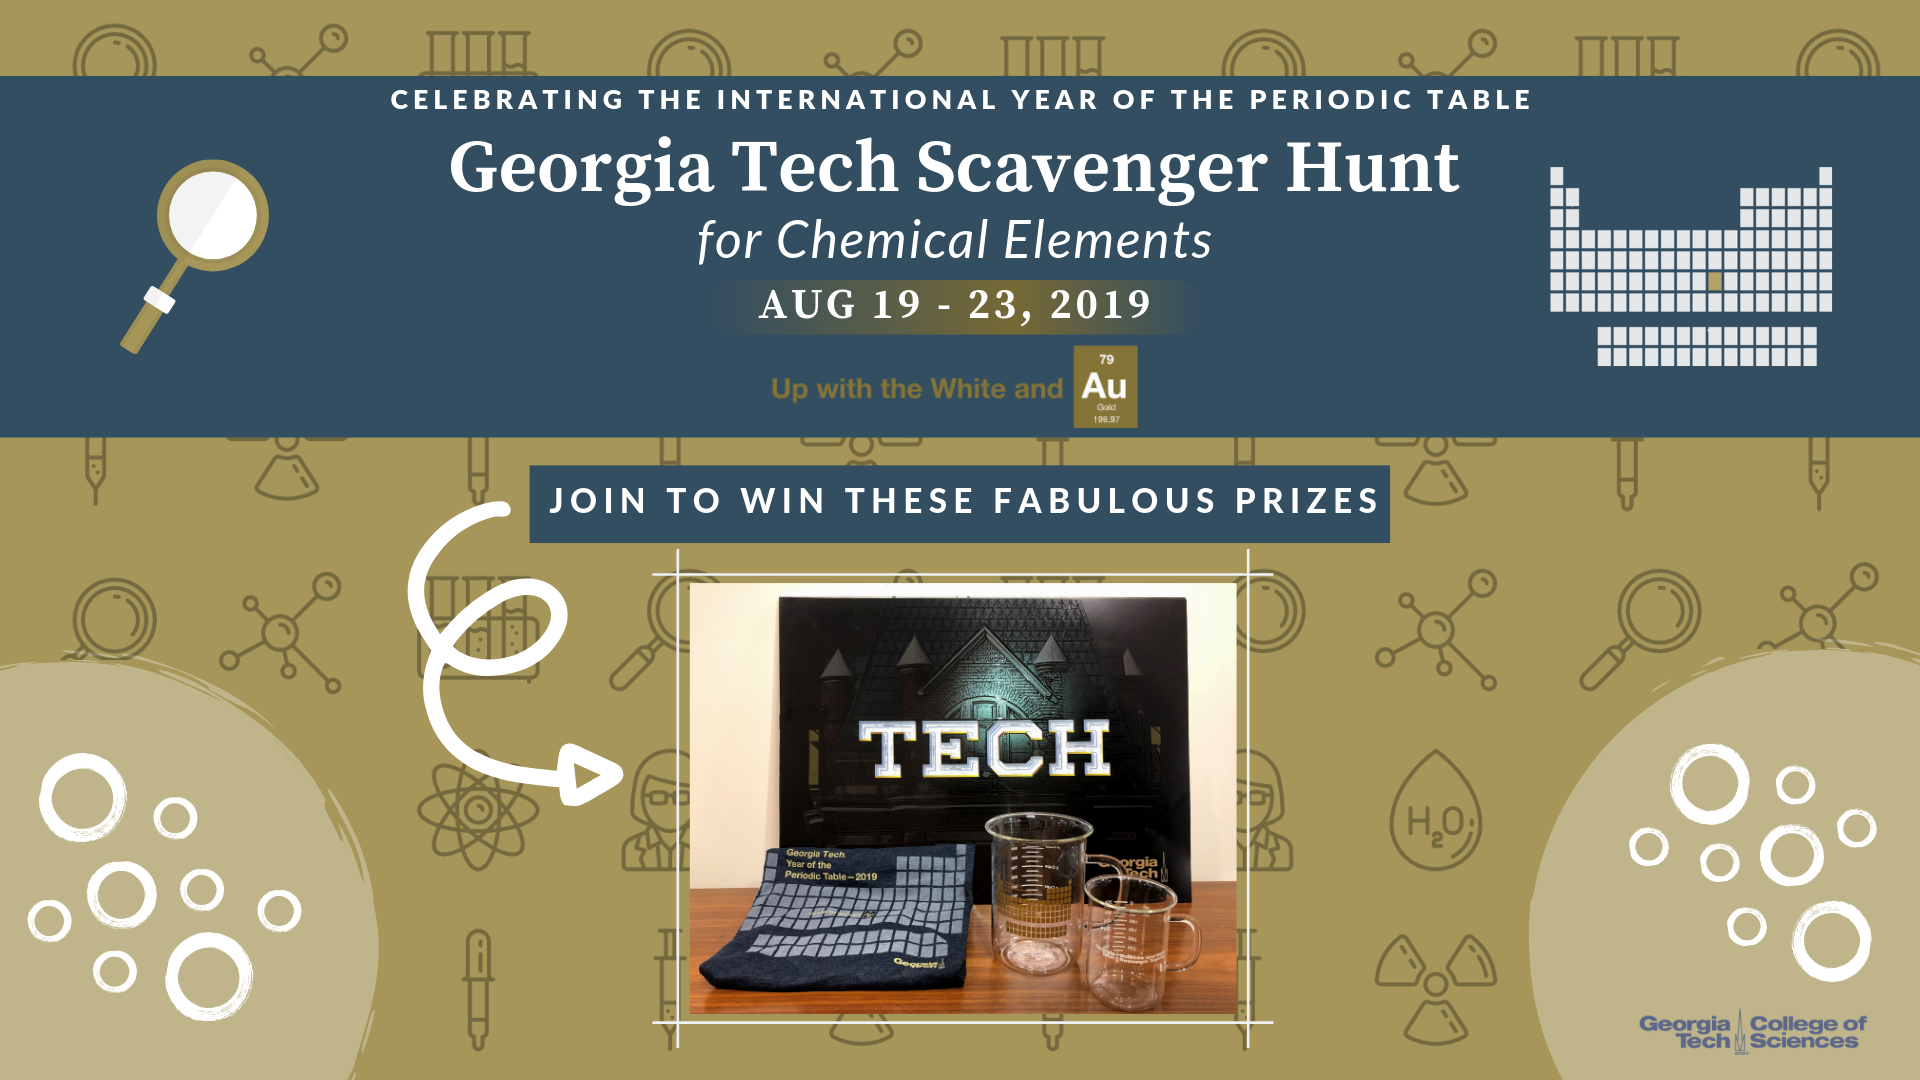 Georgia Tech posters, beaker mugs, and T-shirts await successful scavenger hunters